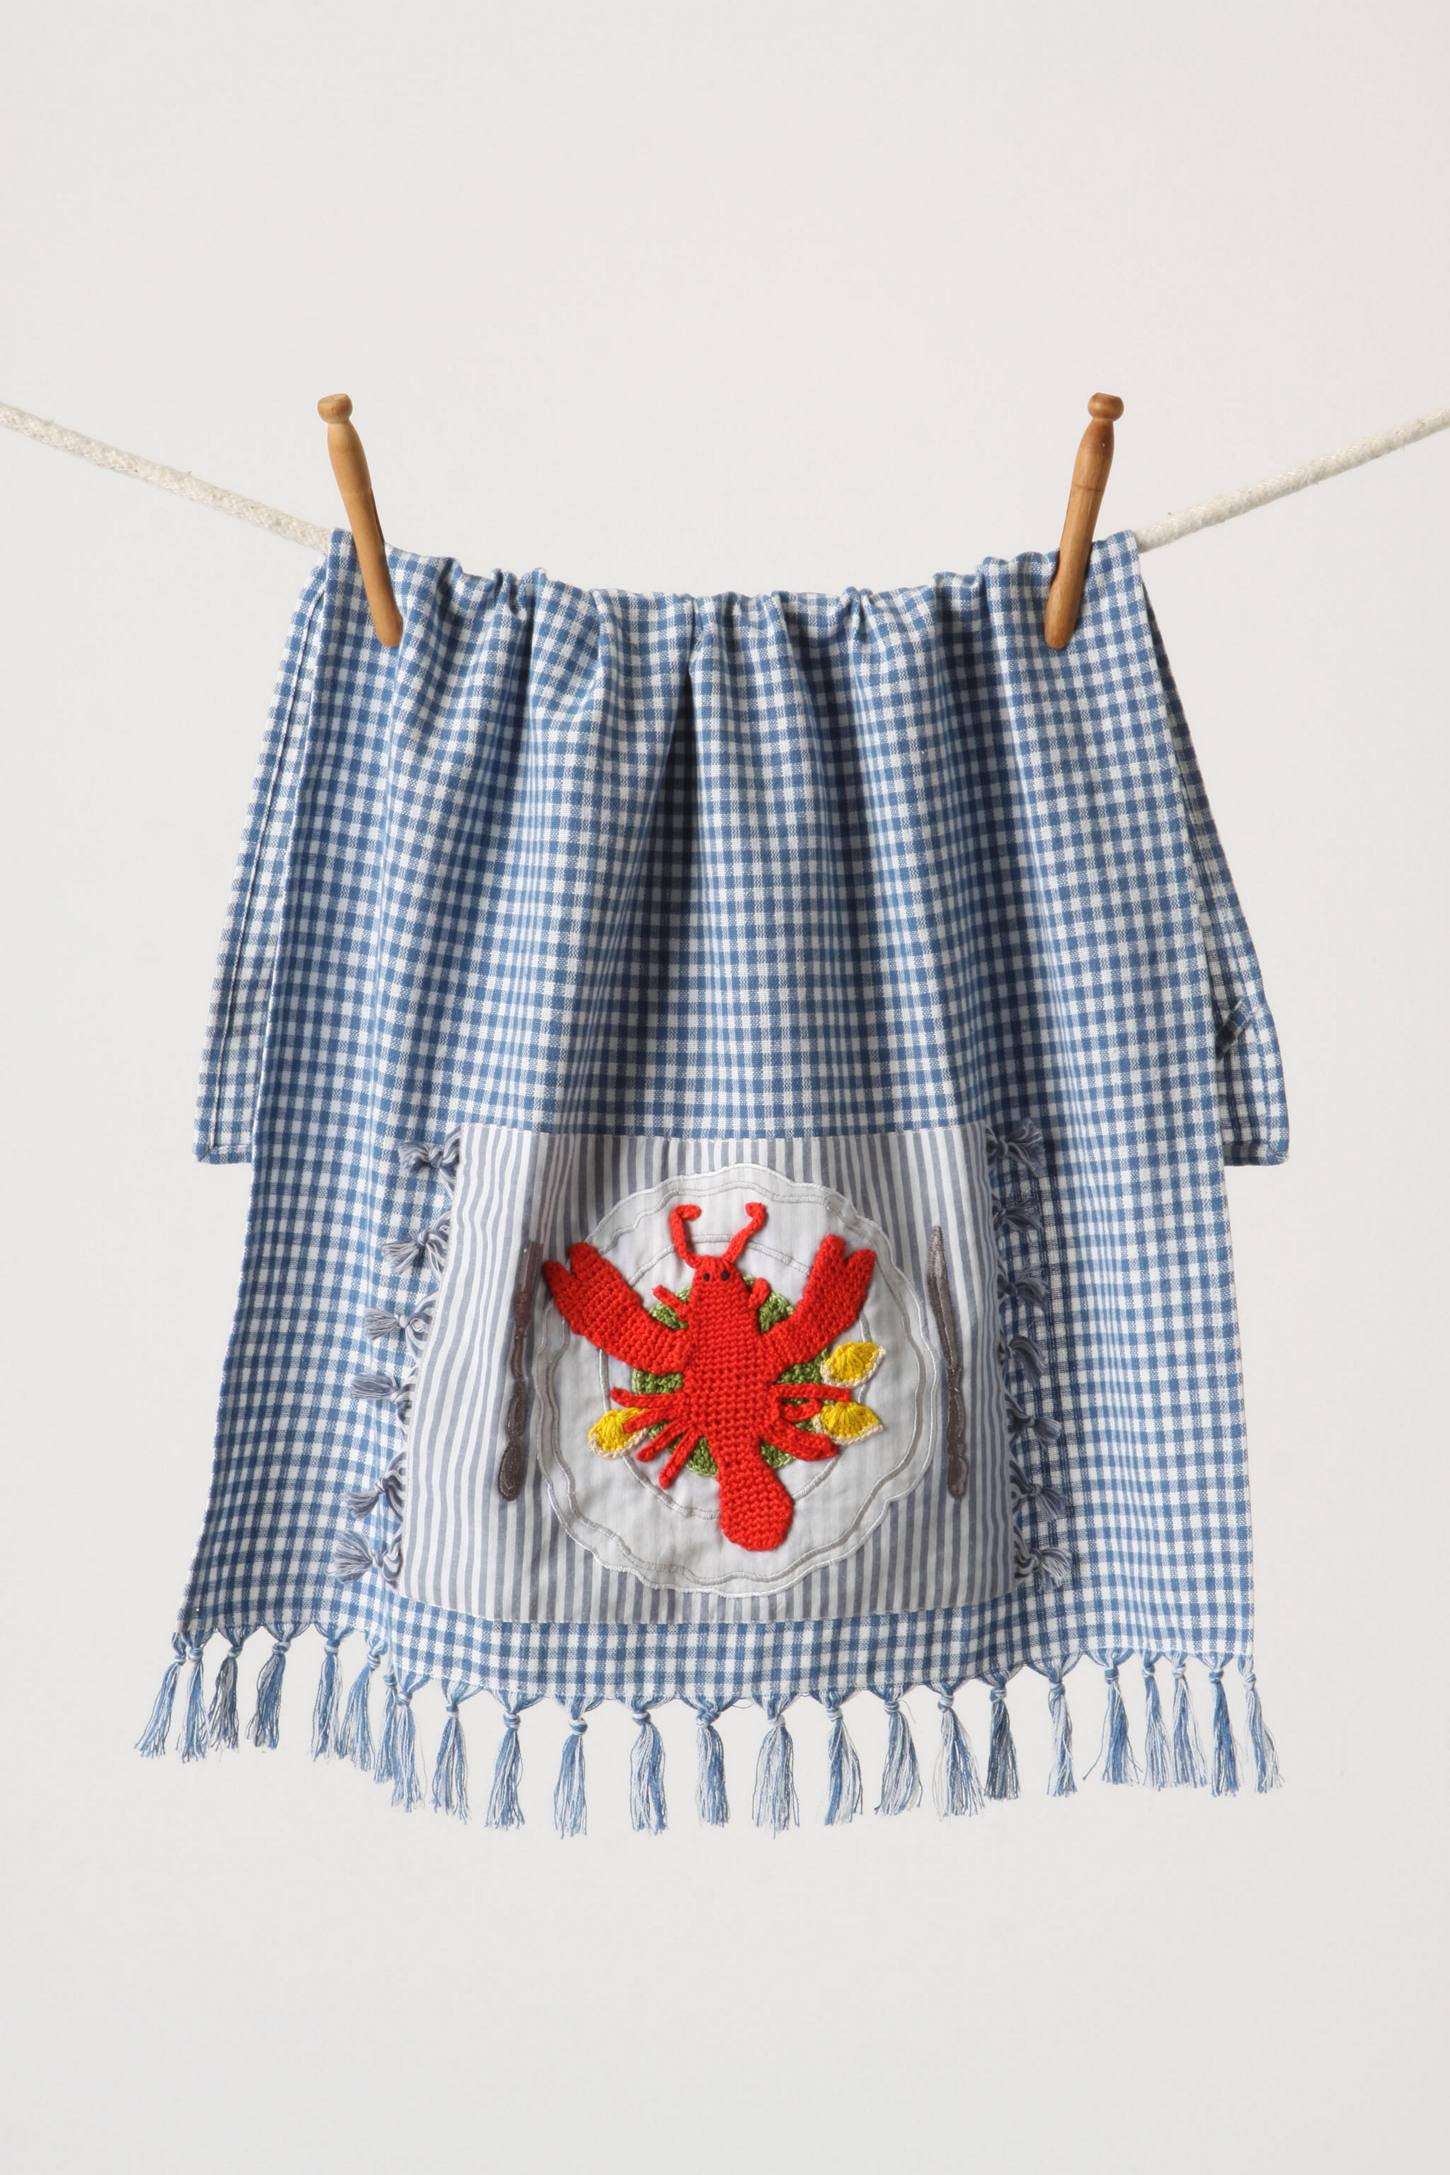 Palmer's Cove Tea Towel, Lobster